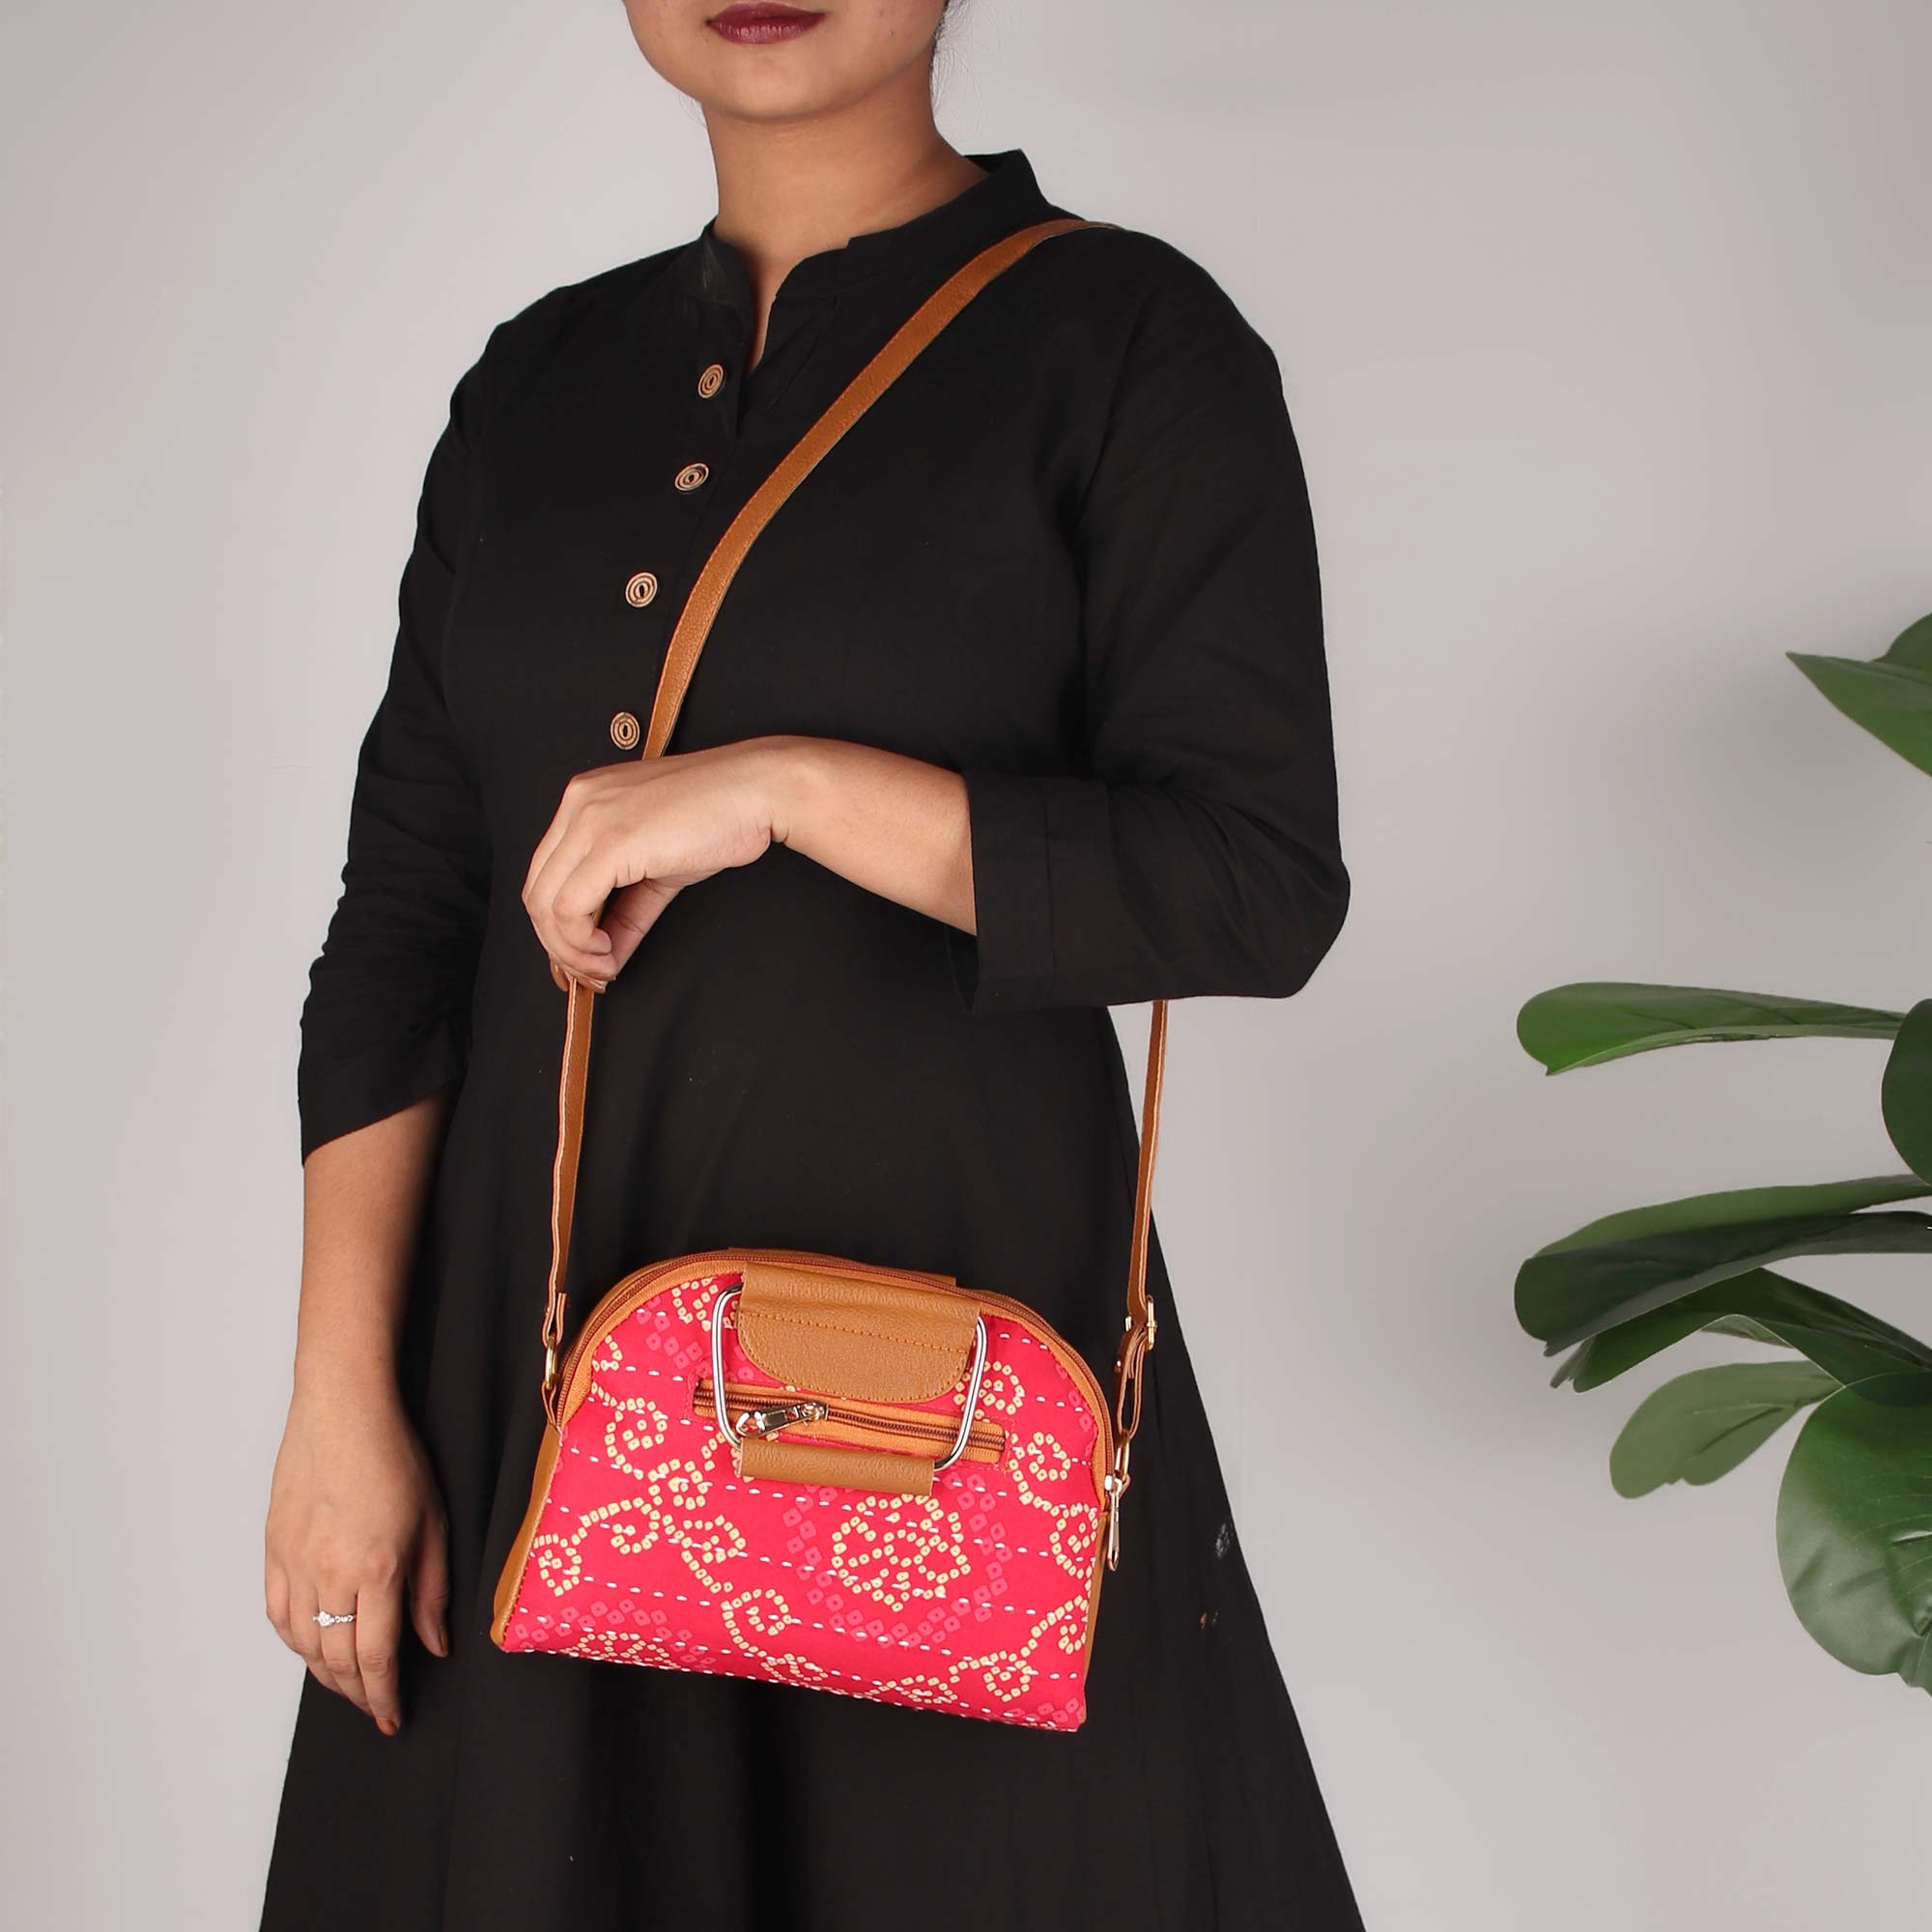 RAJASTHAN MEMOIRS STATEMENT HANDBAG